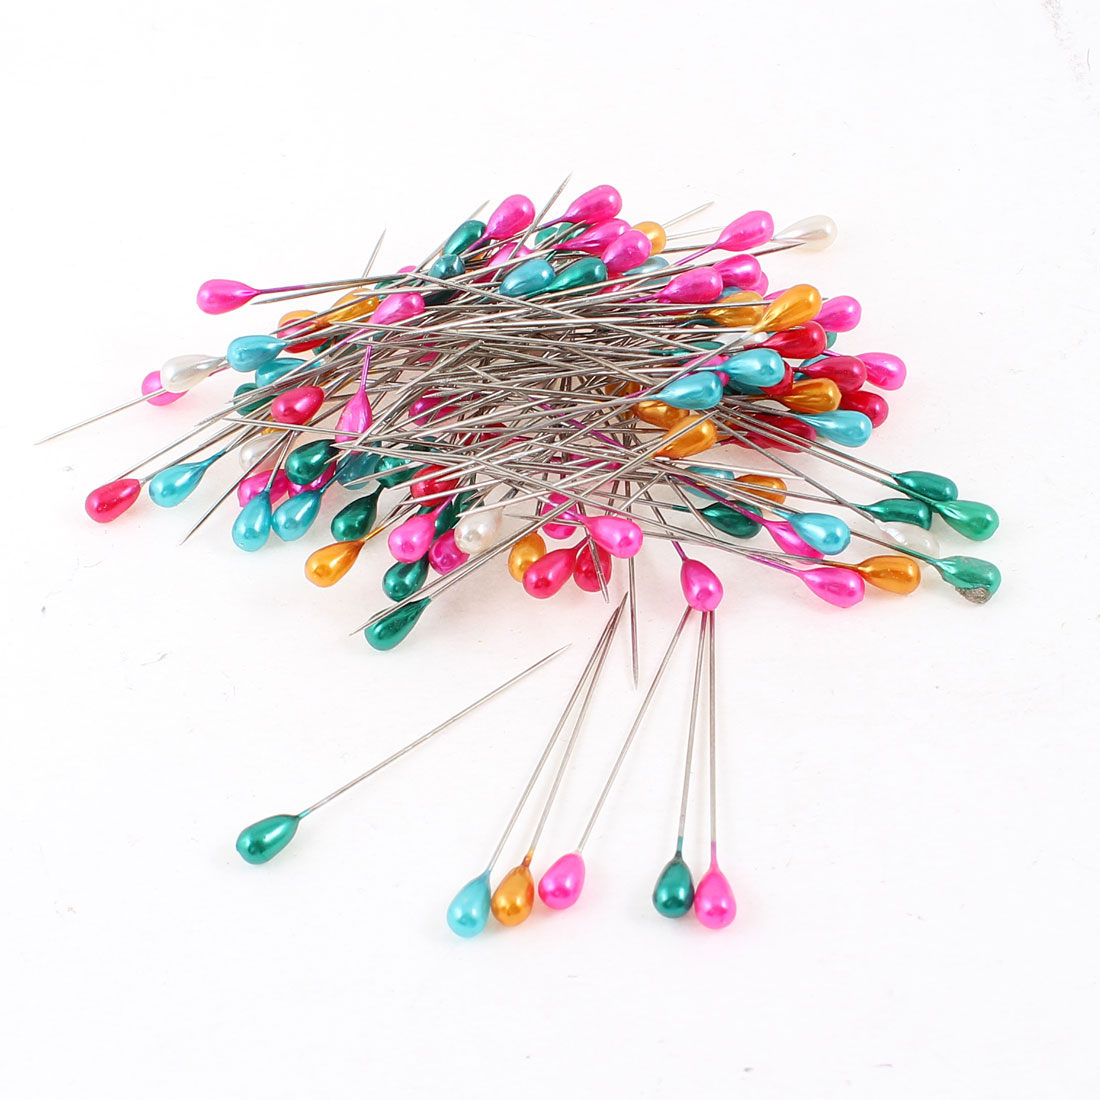 150 Pcs Multicolor Plastic Oval Head Metal Pins Ornament